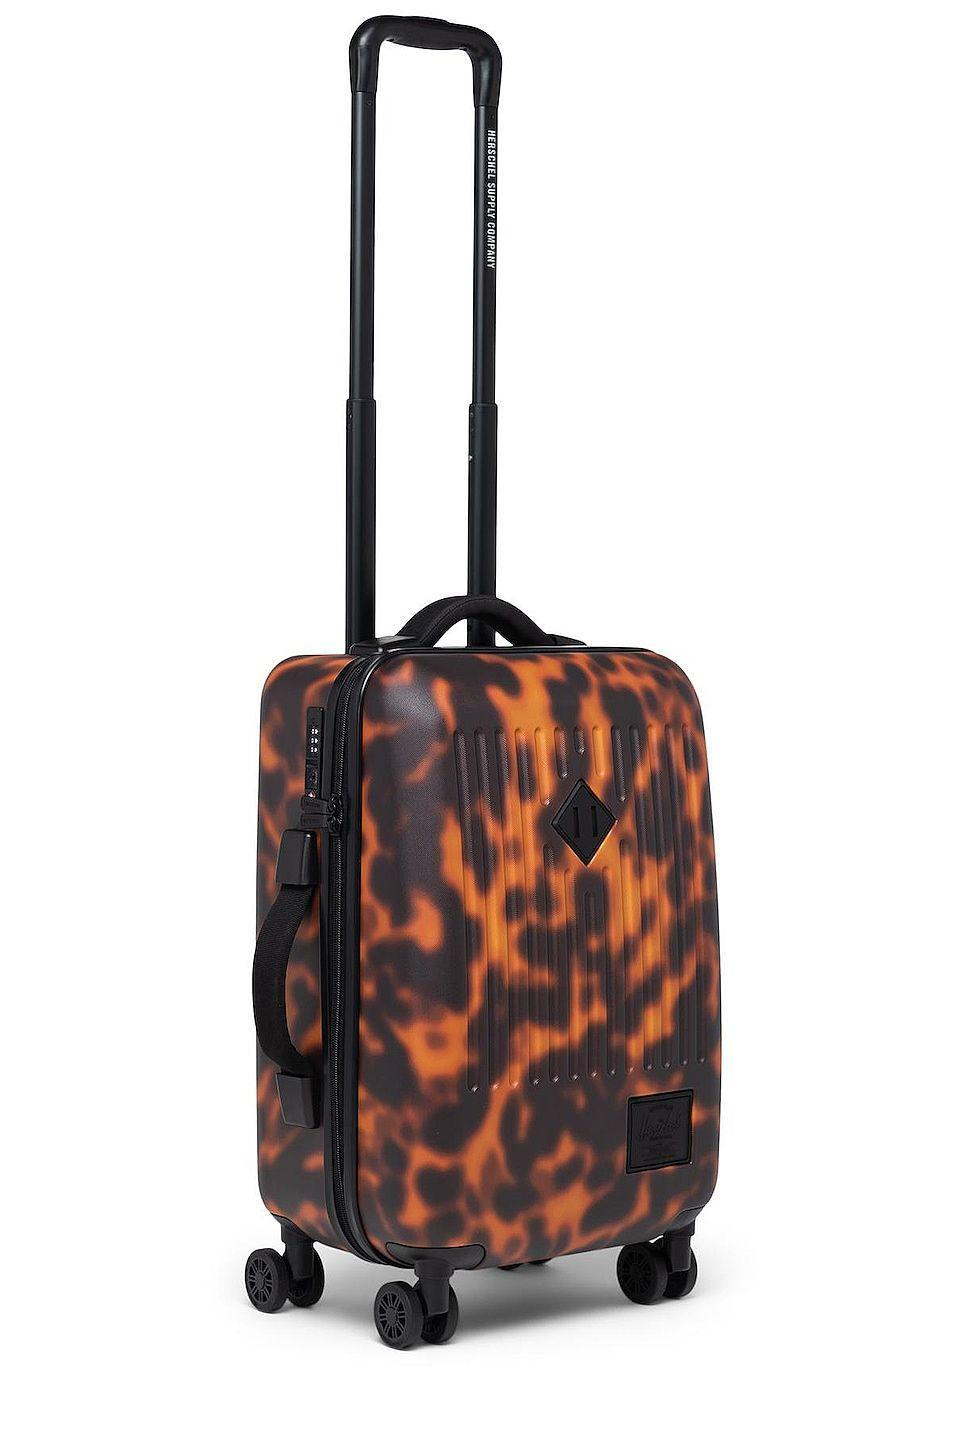 """<p><strong>Herschel Supply Co.</strong></p><p>revolve.com</p><p><strong>$190.00</strong></p><p><a href=""""https://go.redirectingat.com?id=74968X1596630&url=https%3A%2F%2Fwww.revolve.com%2Fdp%2FHERS-WY172%2F&sref=https%3A%2F%2Fwww.seventeen.com%2Flife%2Ffriends-family%2Fg30140775%2Fgifts-for-mom-from-daughter%2F"""" rel=""""nofollow noopener"""" target=""""_blank"""" data-ylk=""""slk:Shop Now"""" class=""""link rapid-noclick-resp"""">Shop Now</a></p><p>Yep, this is going to be Mom's new favorite carry-on.</p>"""